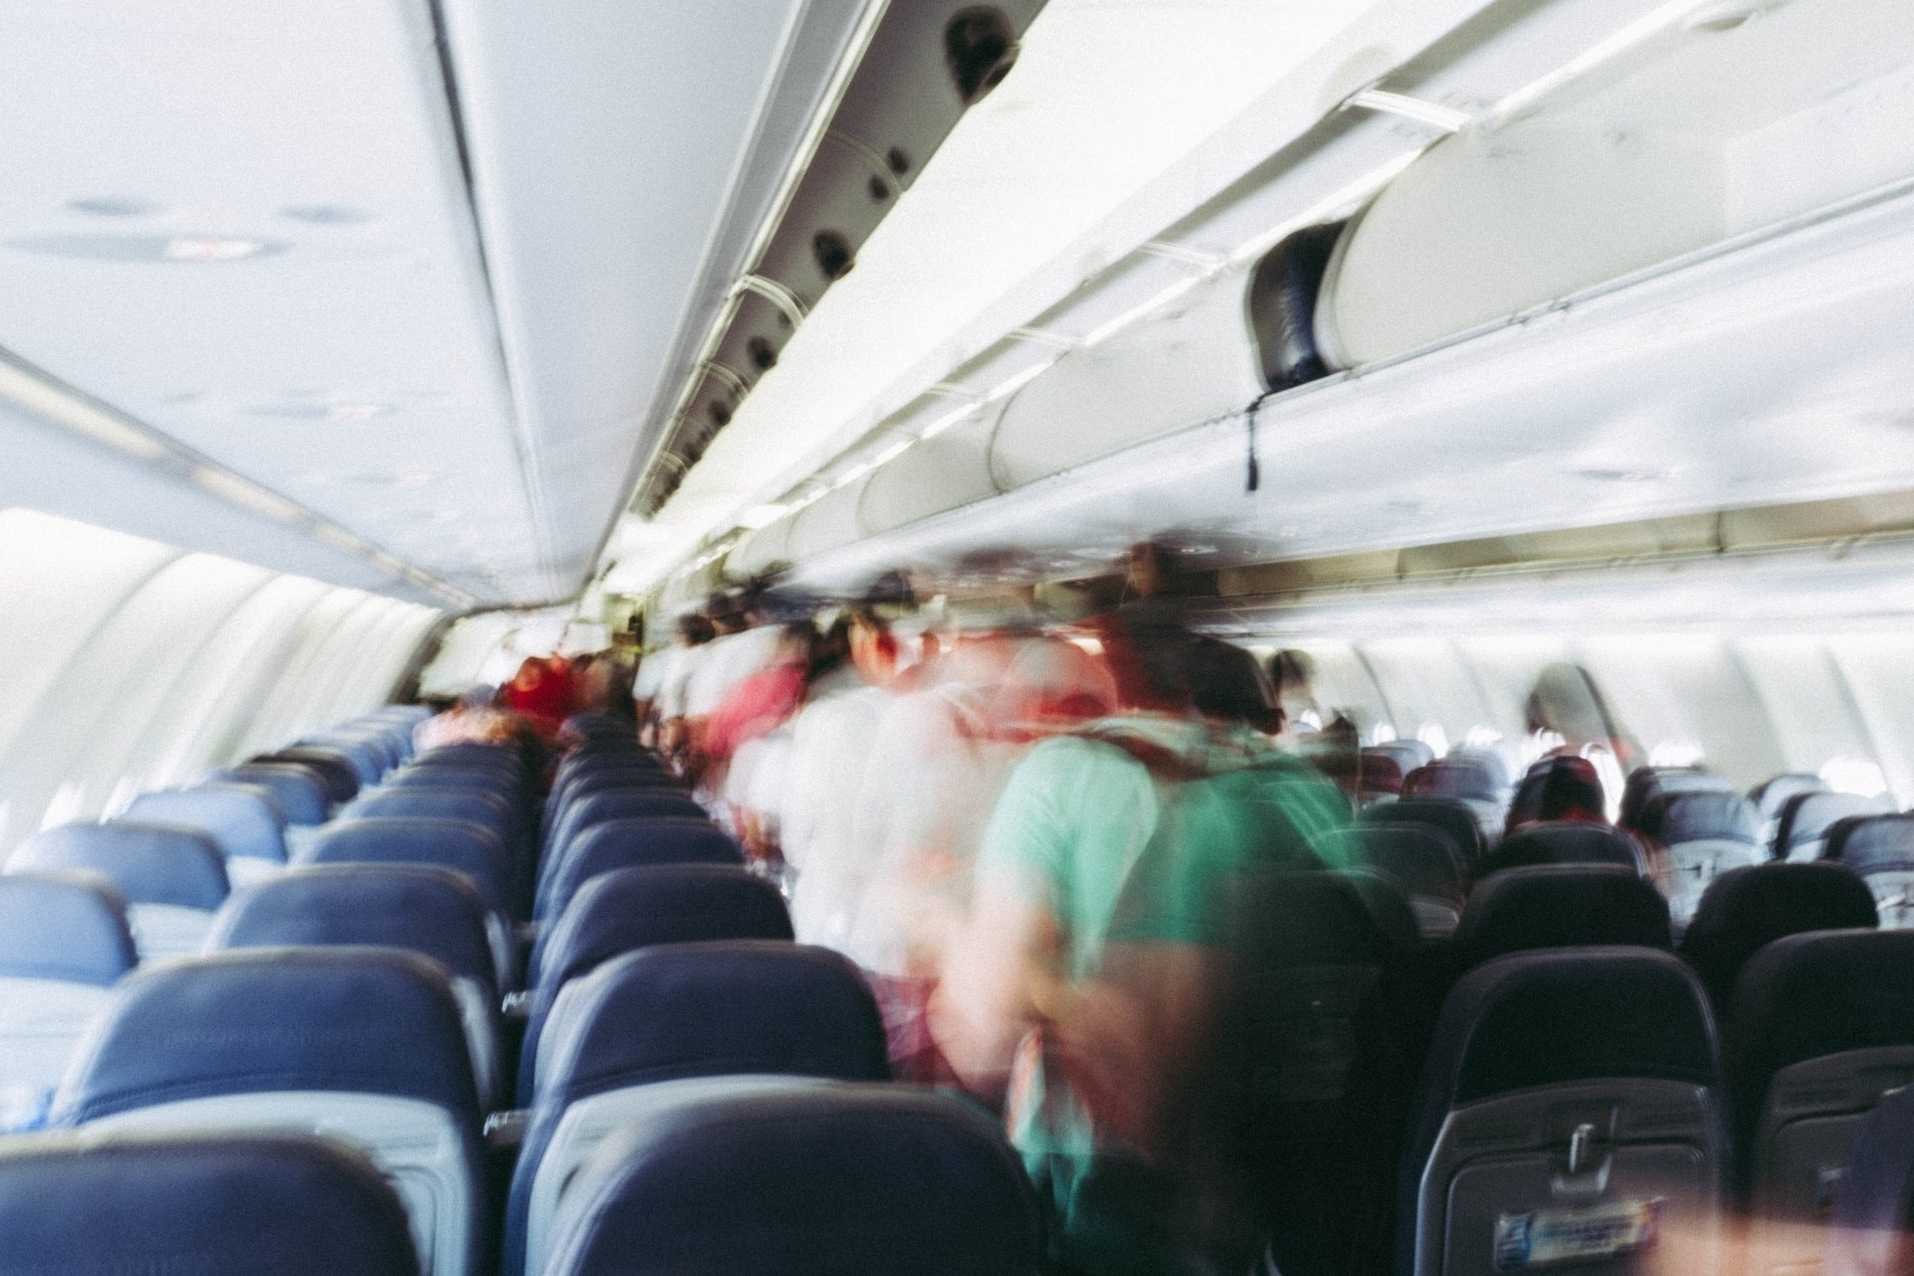 Spoilage - As a product, air travel is ultra perishable. We've been working with carriers for years to create bespoke products designed to create incremental revenue from potentially spoiled inventory.Our approach is straightforward: we ensure airlines can apply the same meticulous care and attention that they do to popular inventory, to distressed inventory.